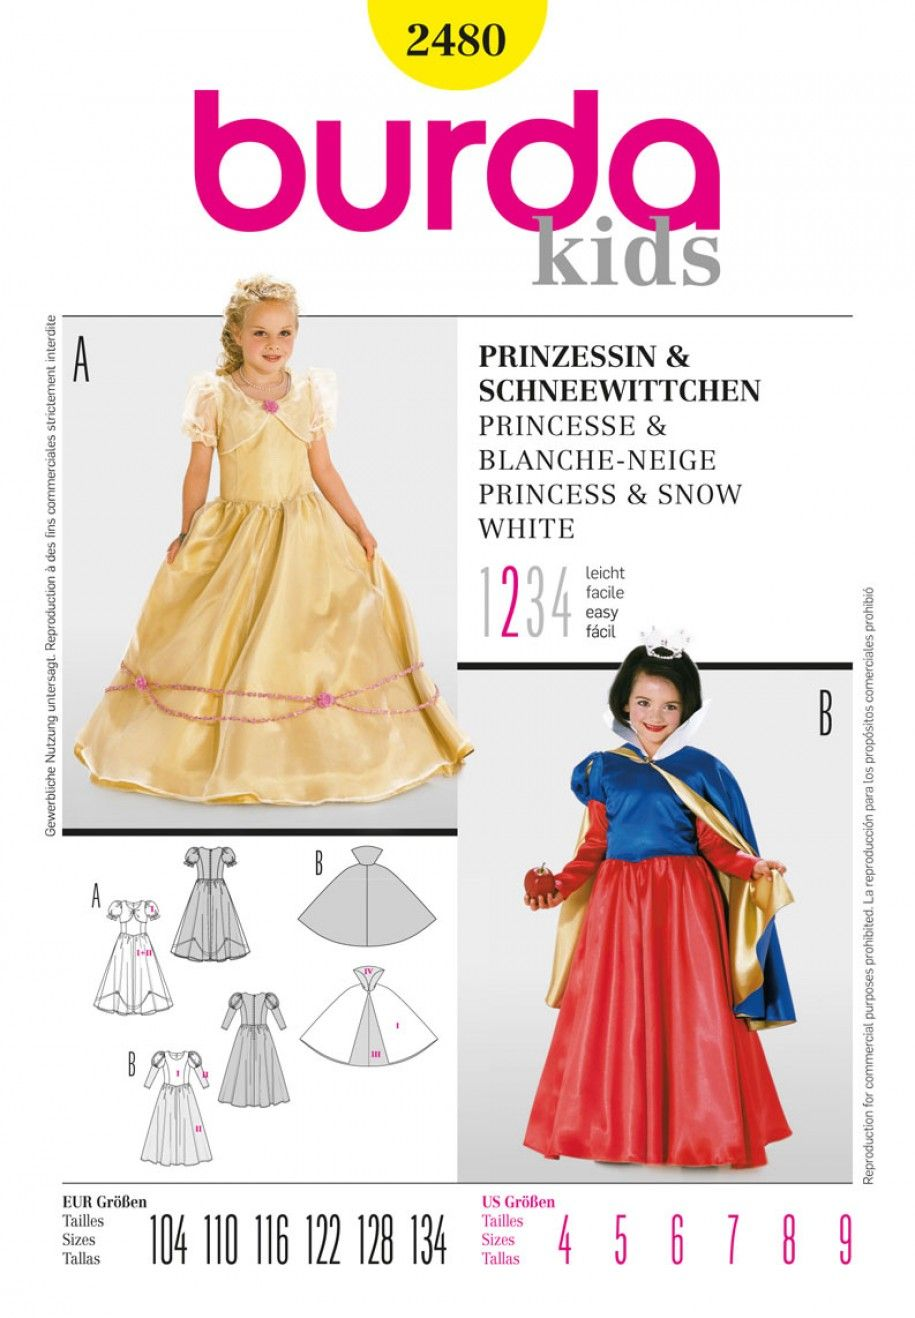 Burda Style B2480 Princess & Snow White Sewing Pattern | Patrones de ...